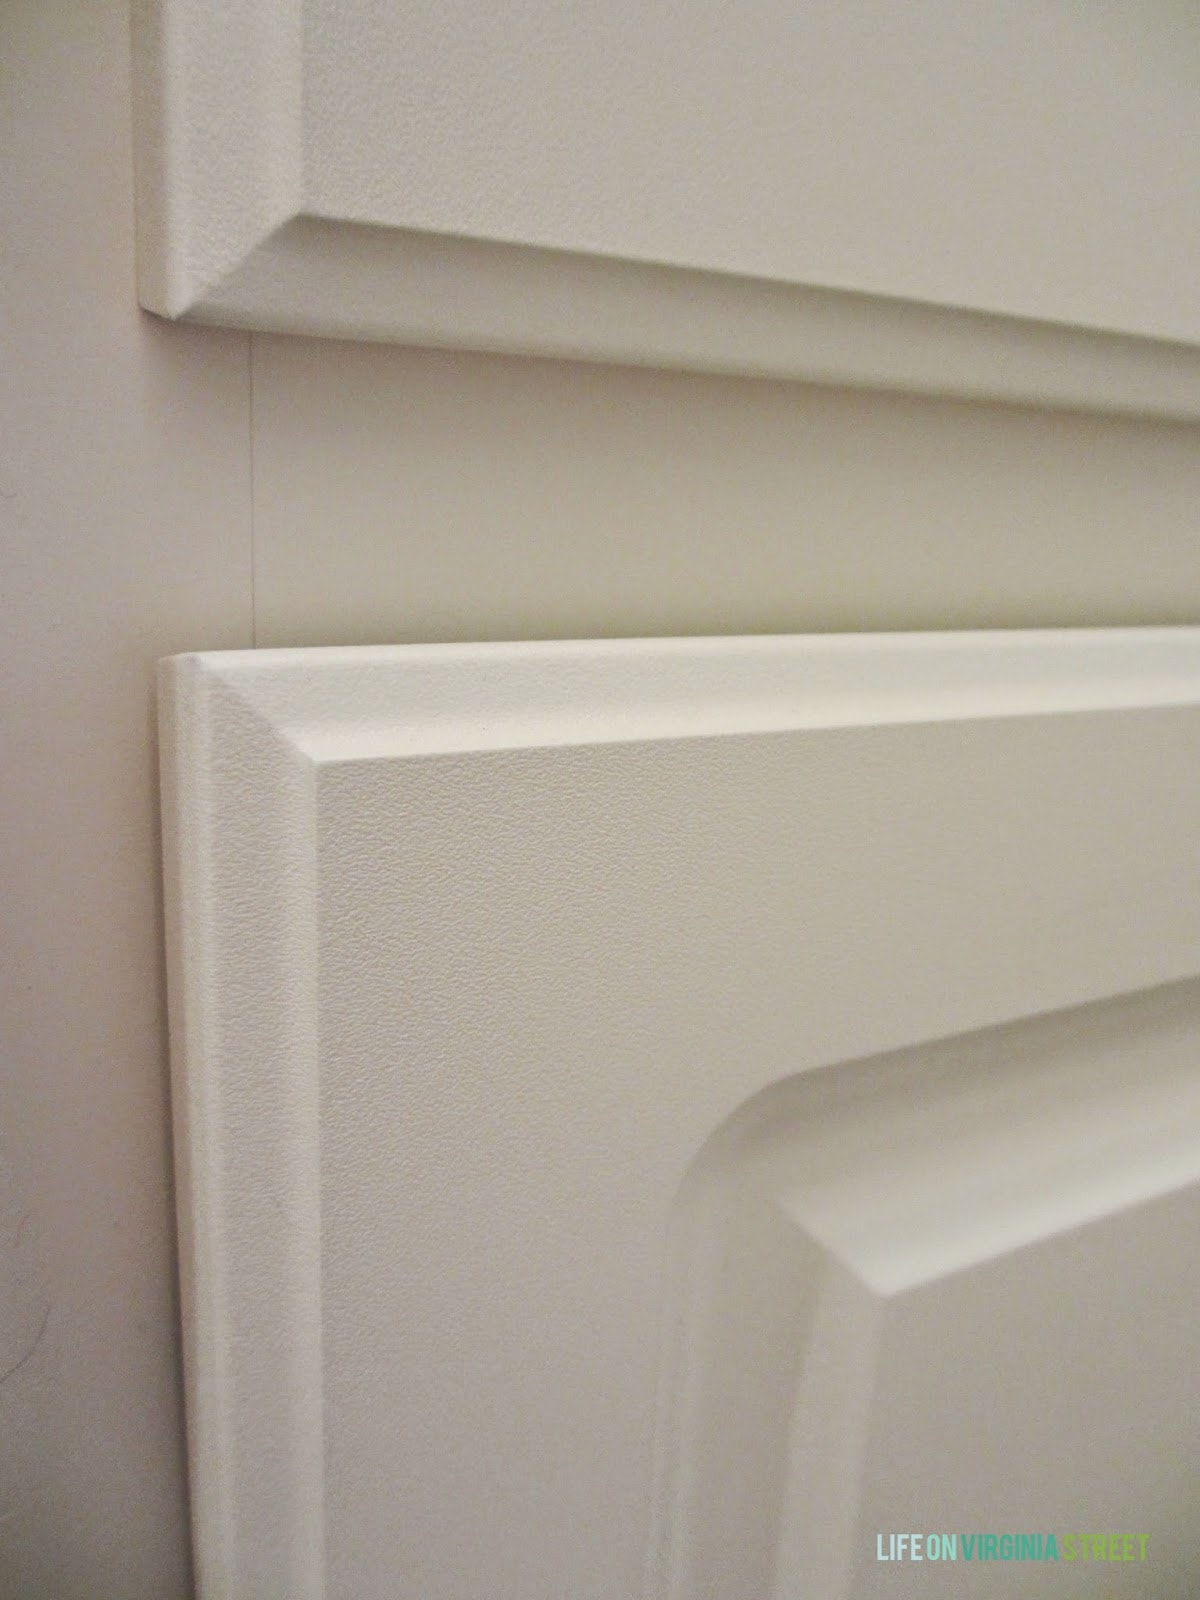 Close up of the cream white laminate bathroom cabinets I'm planning to paint.